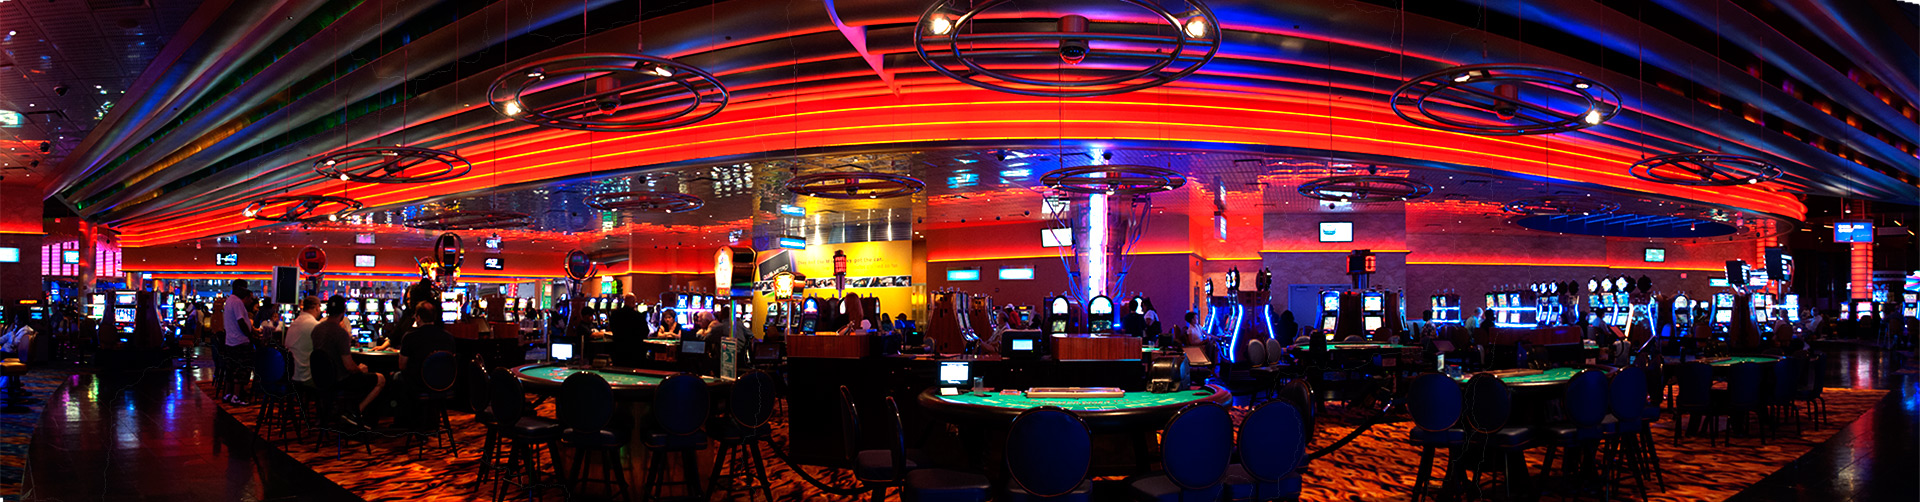 club world casino comps